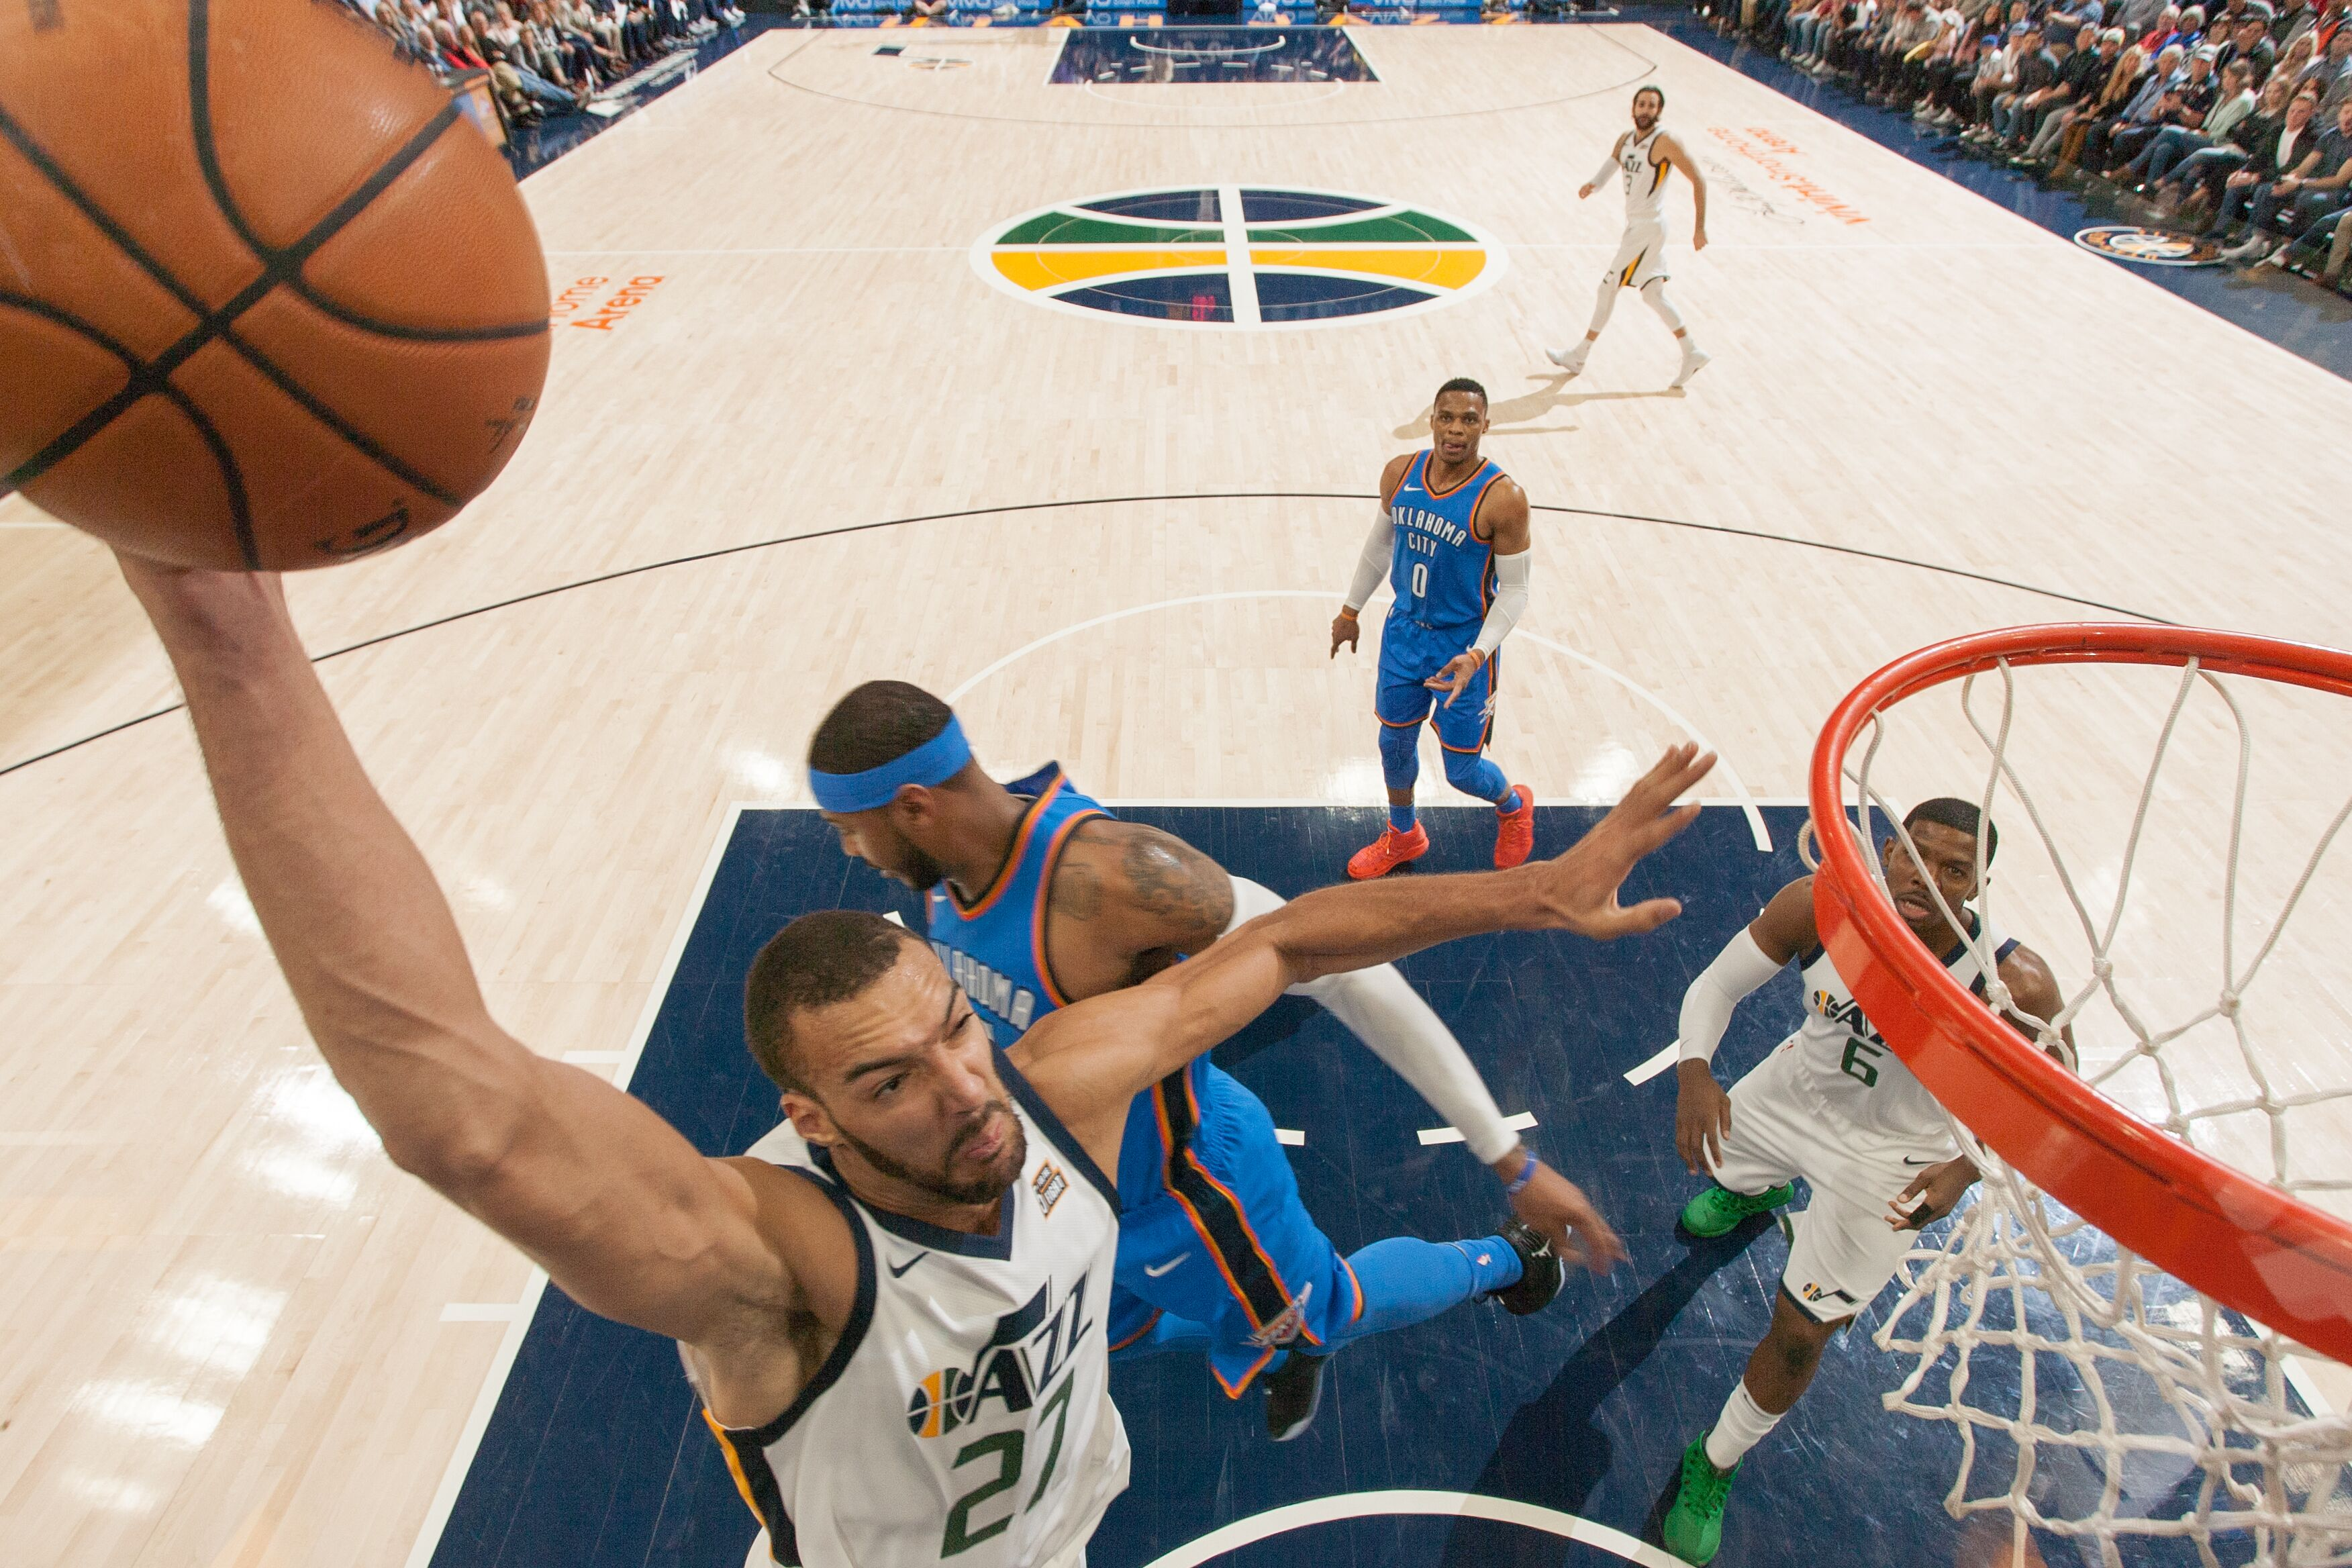 864863722-oklahoma-city-thunder-v-utah-jazz.jpg